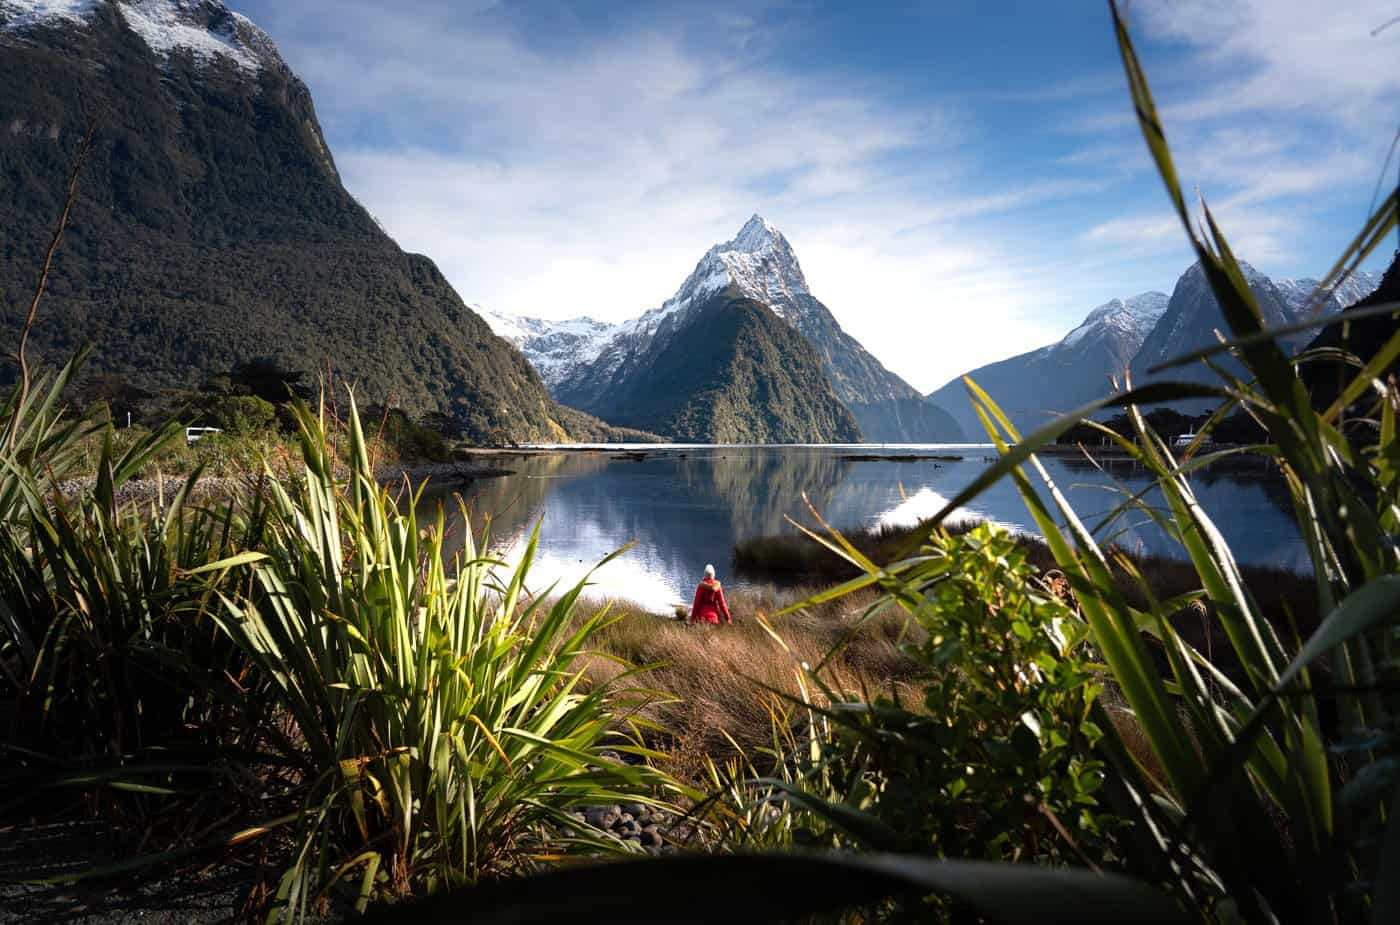 Including Milford Sound is a difficult decision when crafting the perfect 7 day New Zealand South Island itinerary.